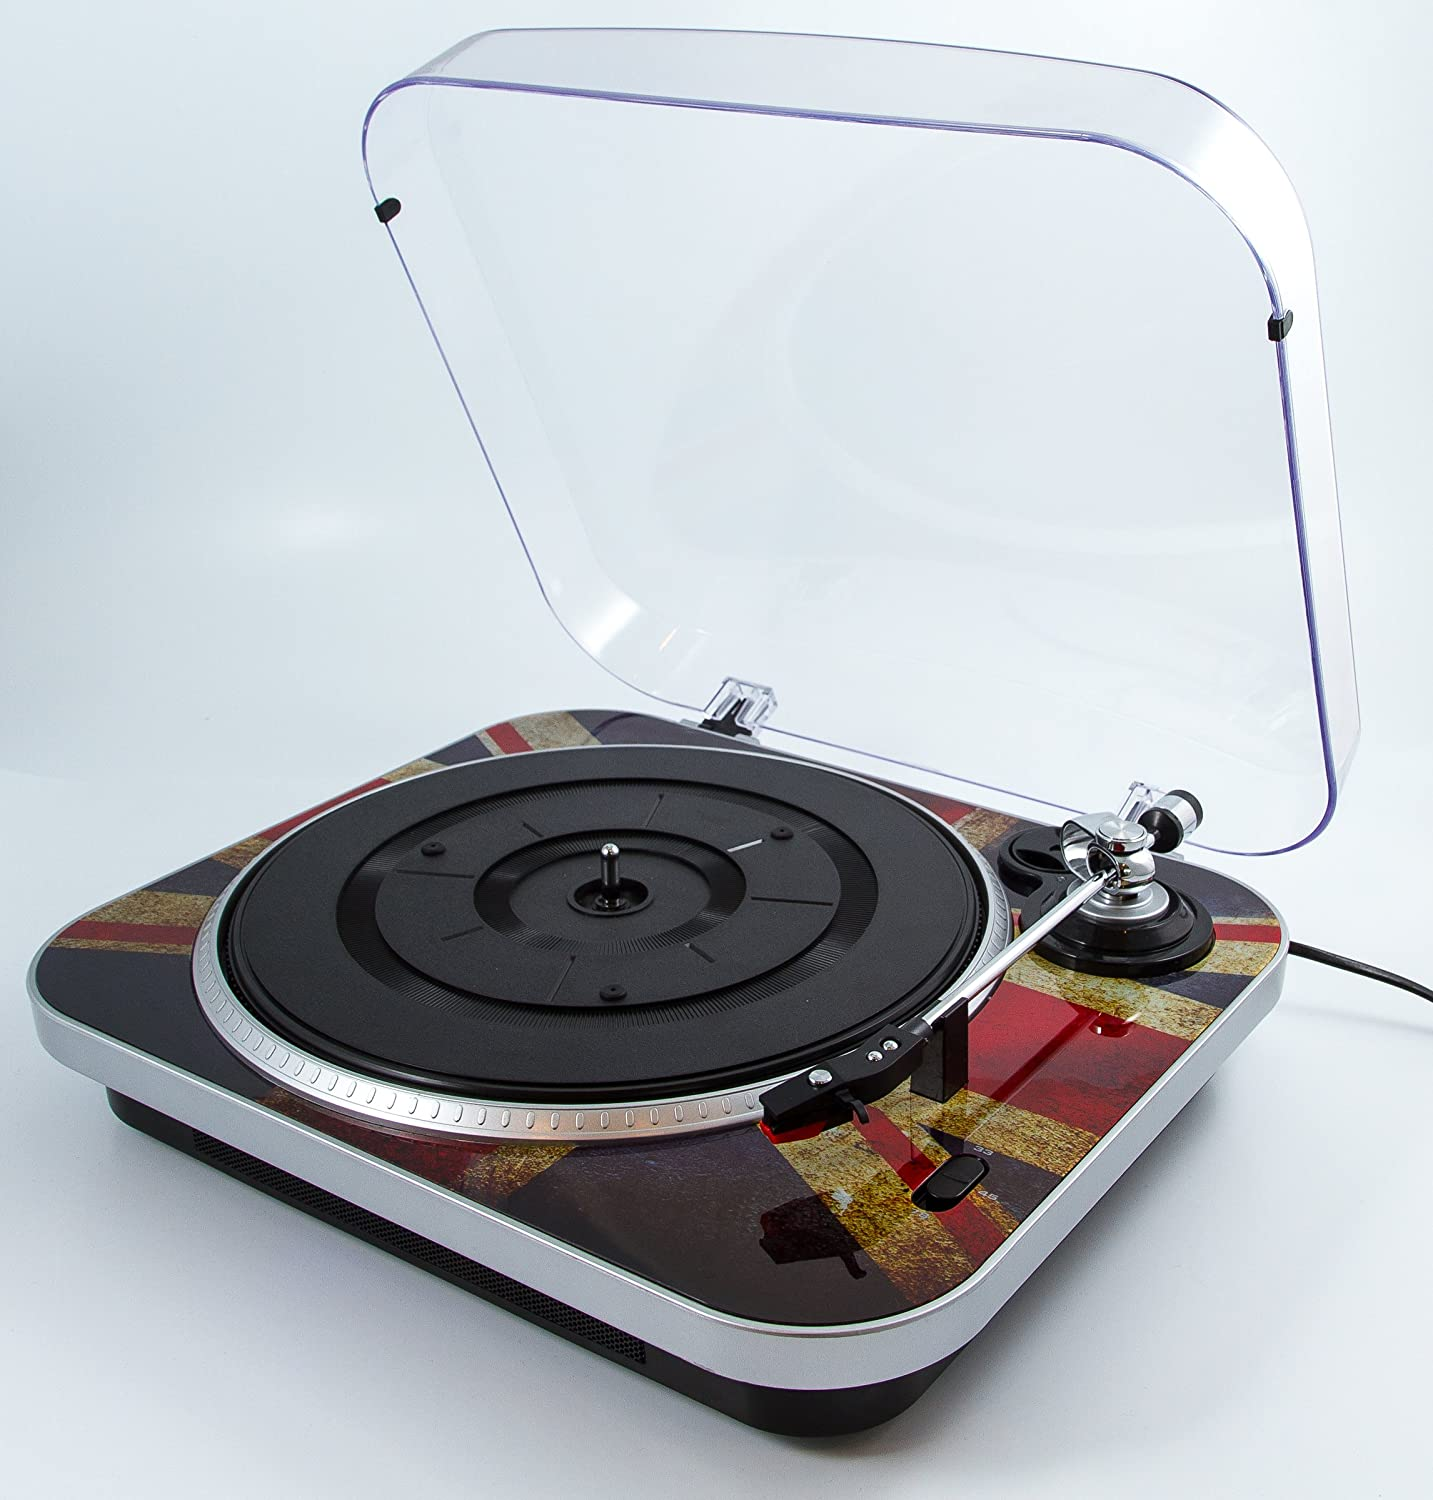 Gpo Jam Record Player Vinyl To Pc Turntable Built In